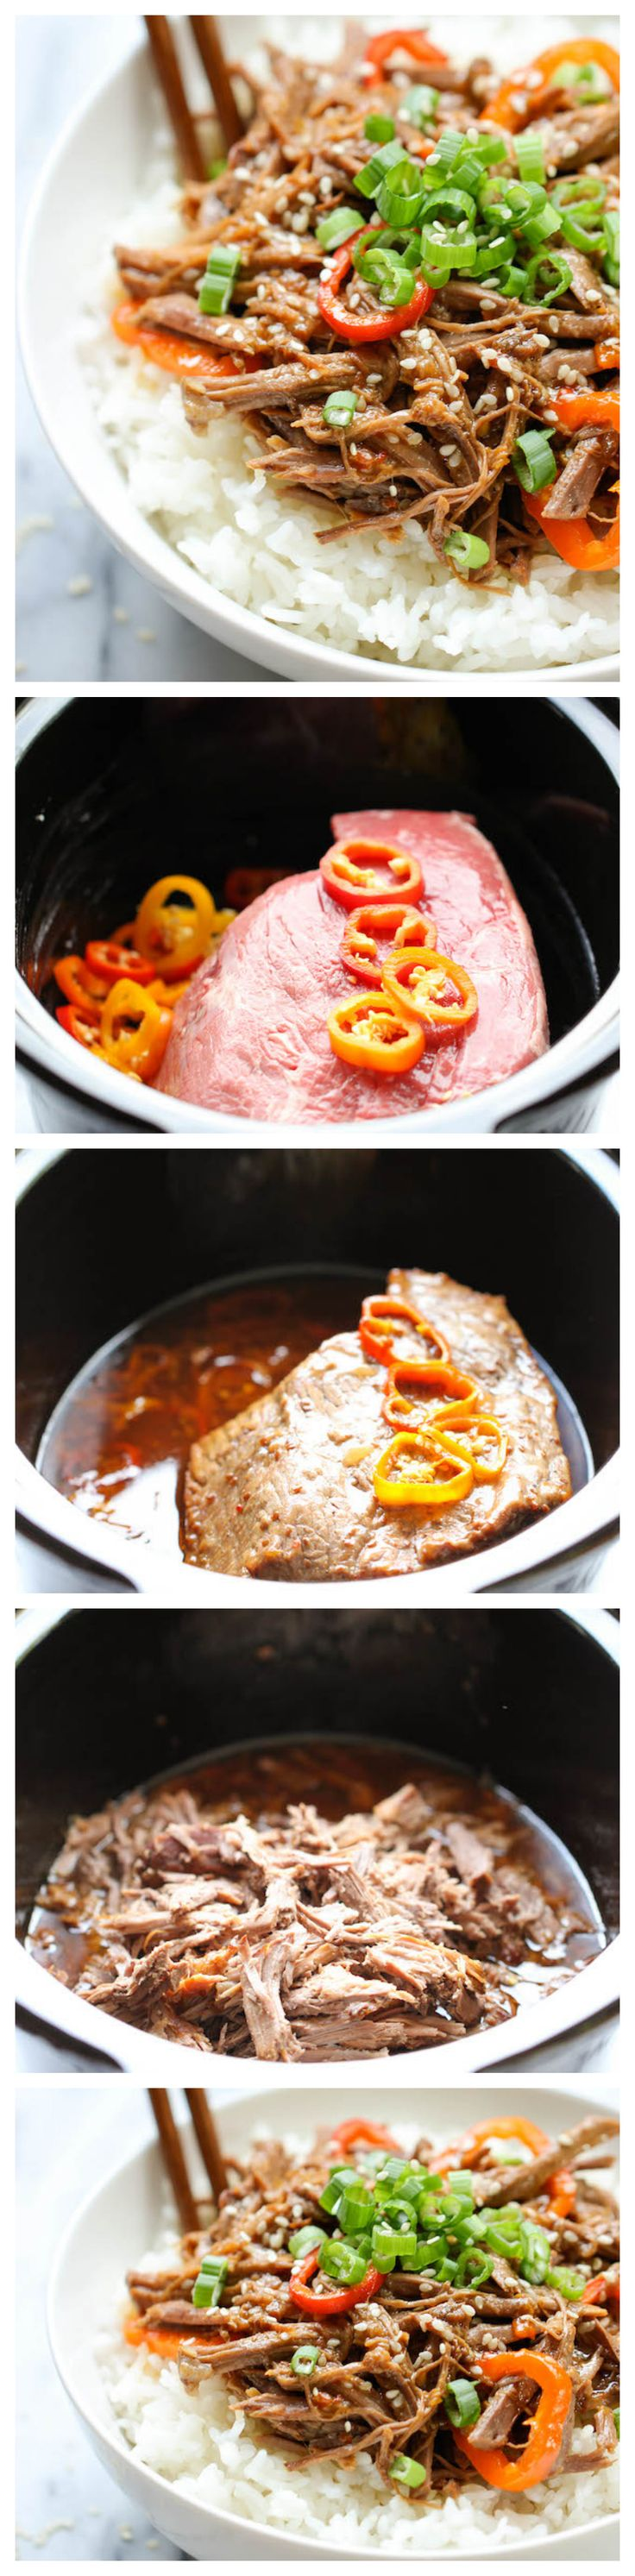 Slow Cooker Korean Beef - Amazingly tender, flavorful Korean beef made right in the slow cooker with just 3 ingredients and 5 min prep! ...........click here to find out more http://kok.googydog.com